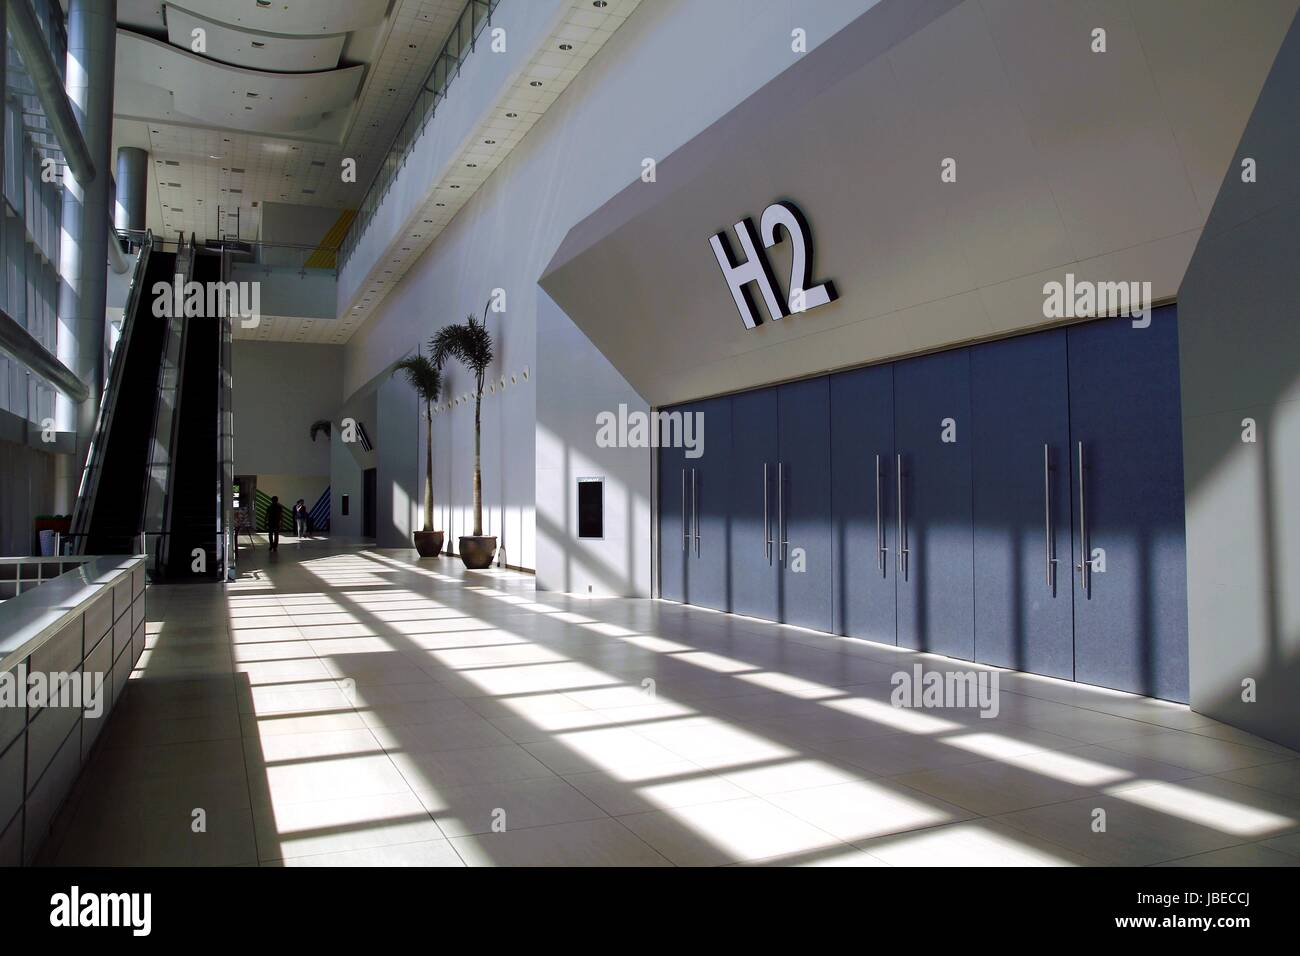 PASAY CITY, PHILIPPINES - MAY 3, 2016: Hallway inside the ground floor of the SMX Convention Center in Pasay City, - Stock Image